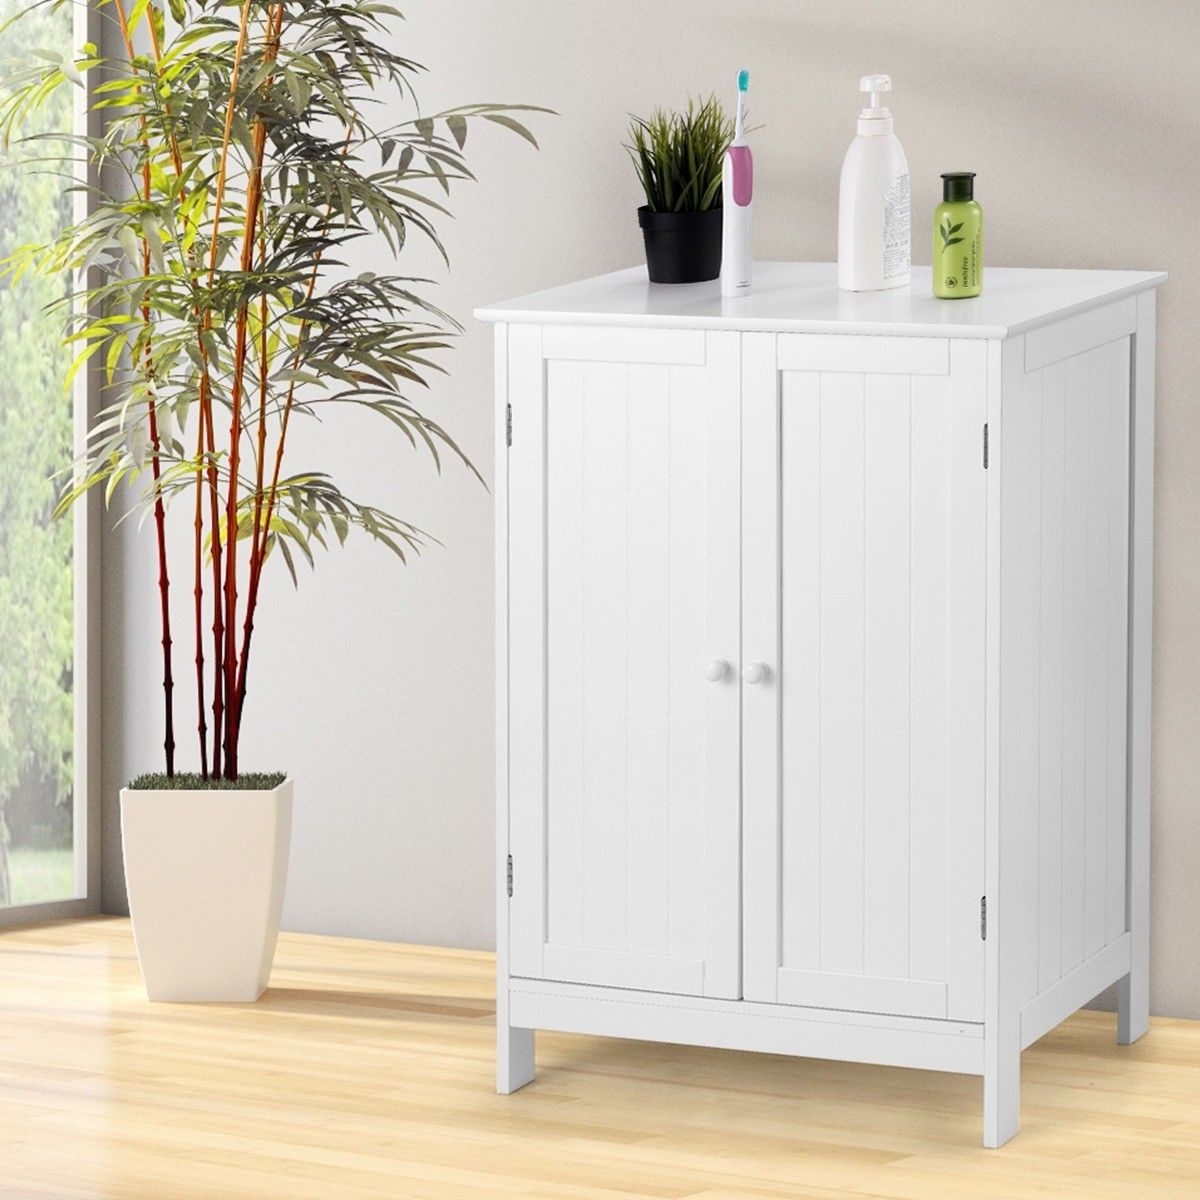 Bathroom Floor Storage Double Door Cupboard Cabinet 78 95 Free Shipping This Bathroom Cabinet Combines Stylish And Functionality To Cre Bathroom Flooring Bathroom Floor Cabinets Storage